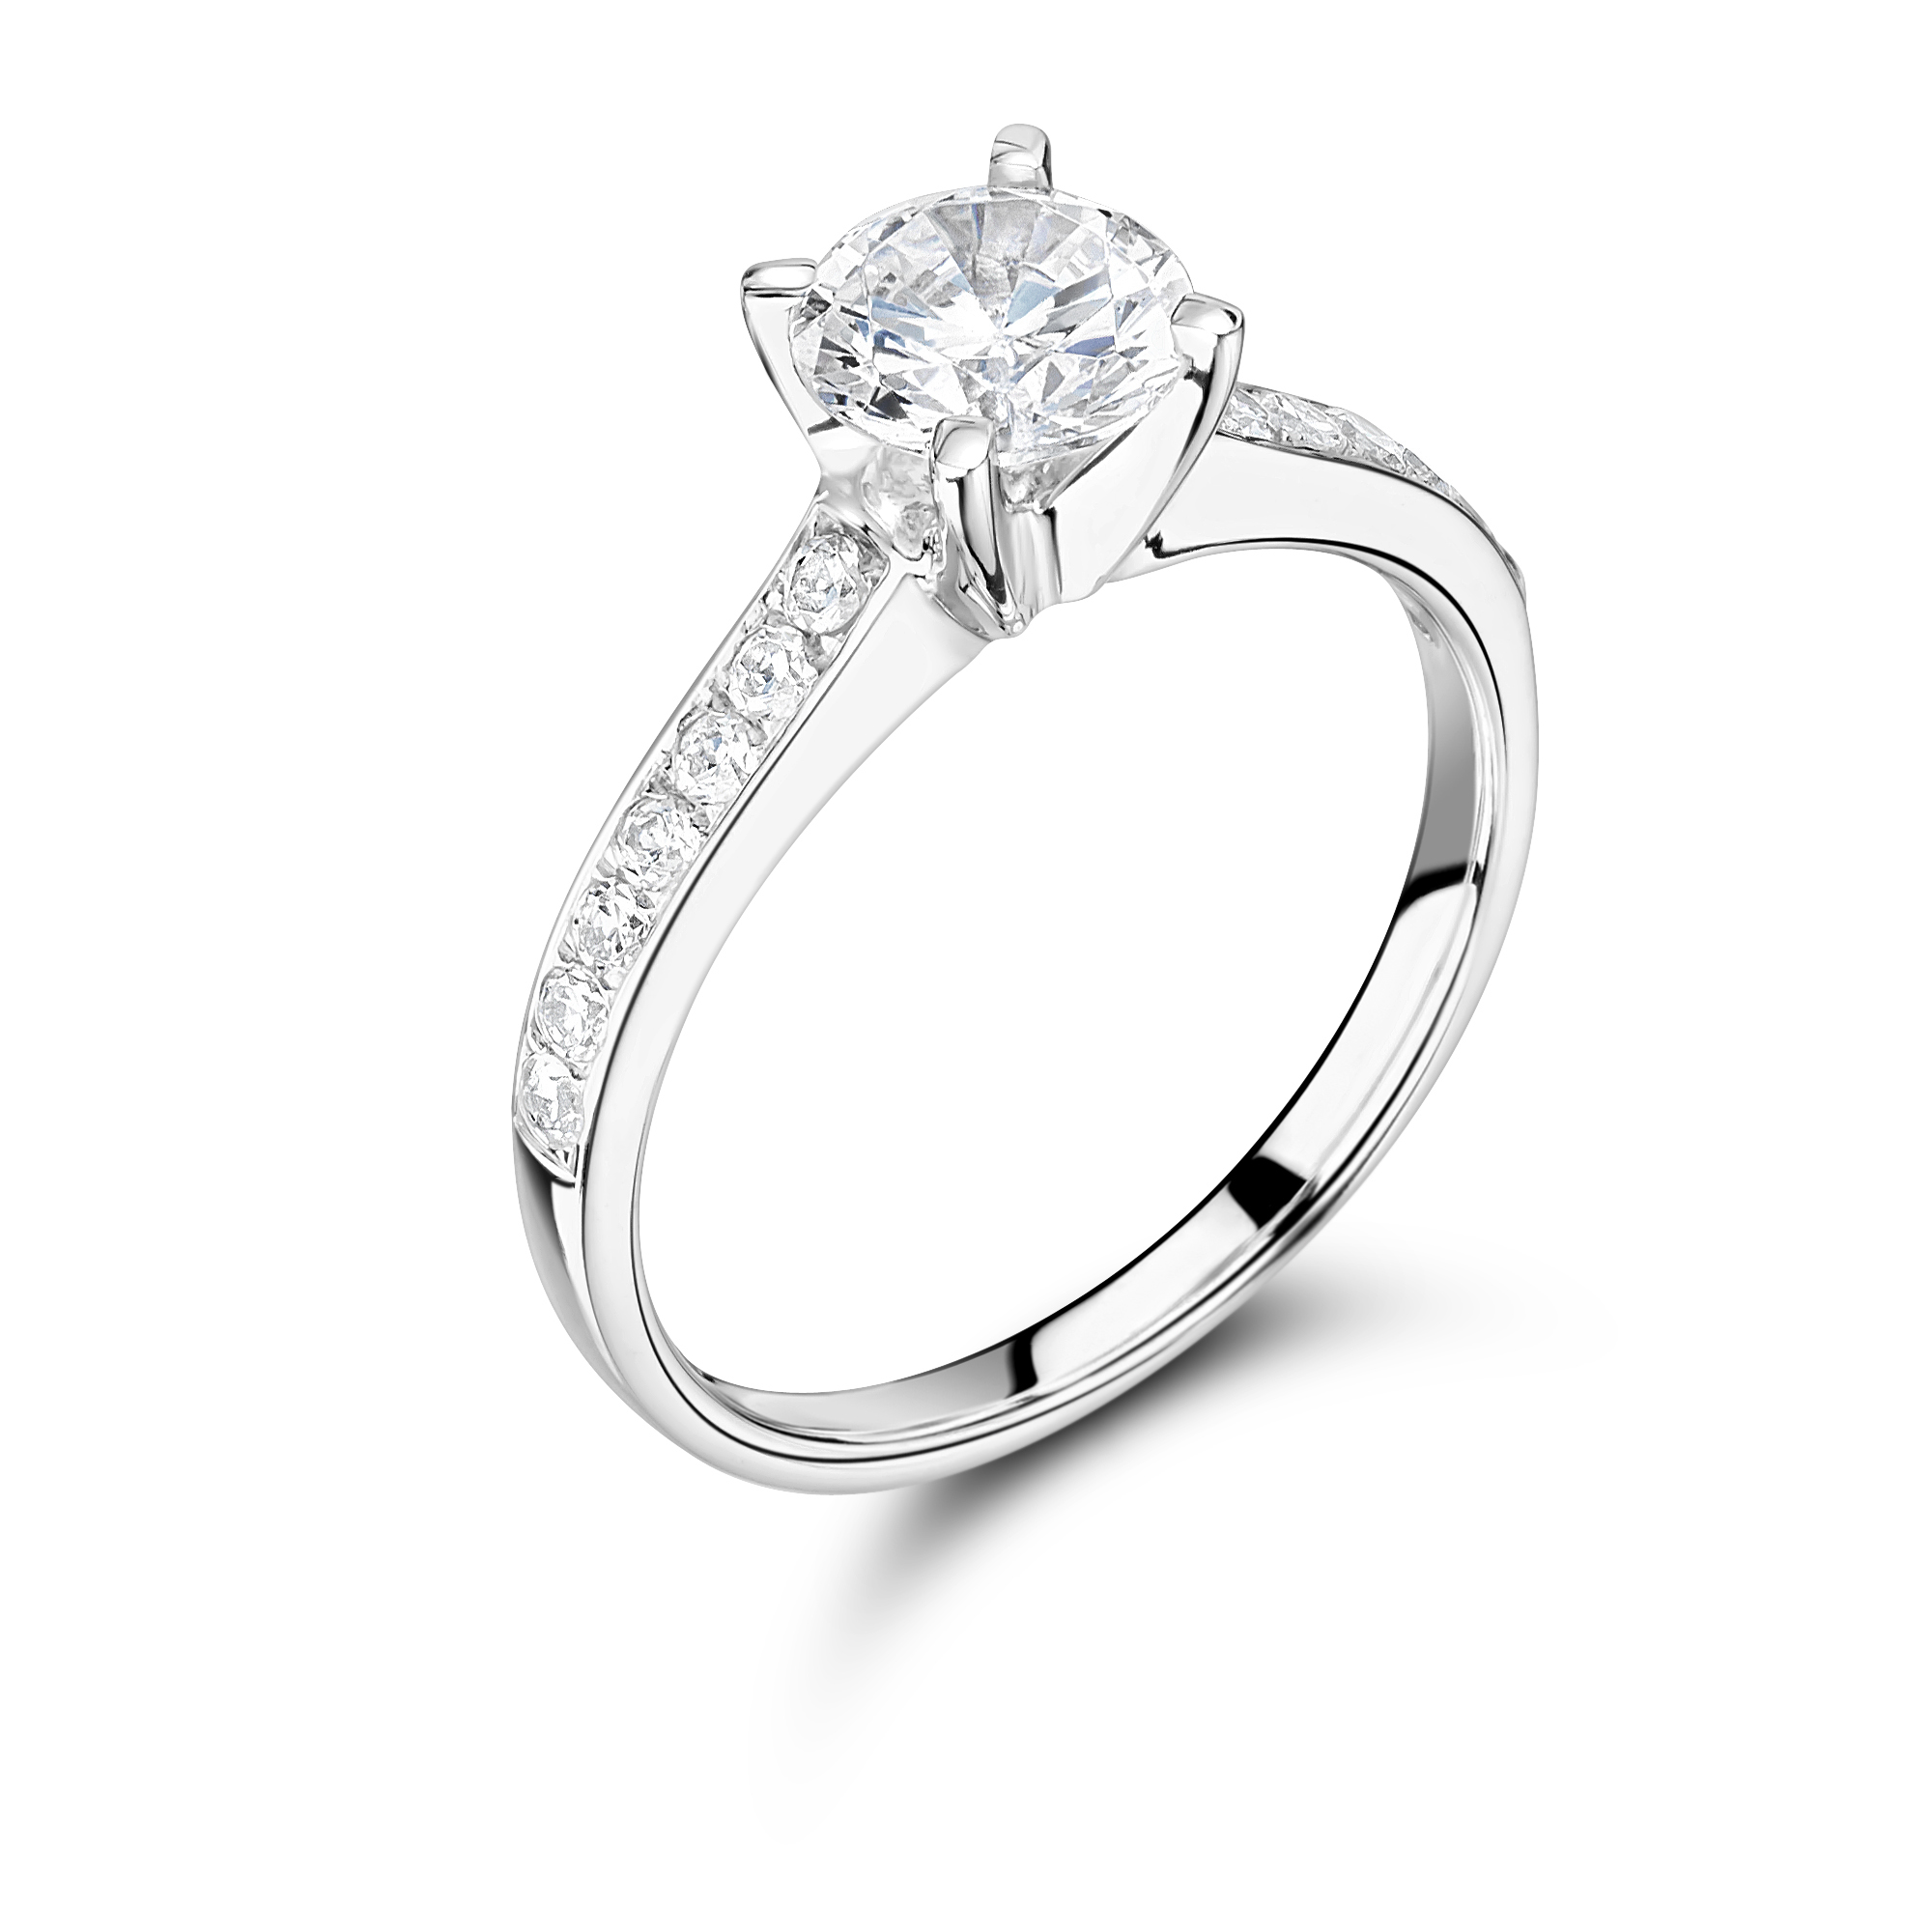 a engagement wedding round solitaire ring cut diamond platinum rings carat brilliant